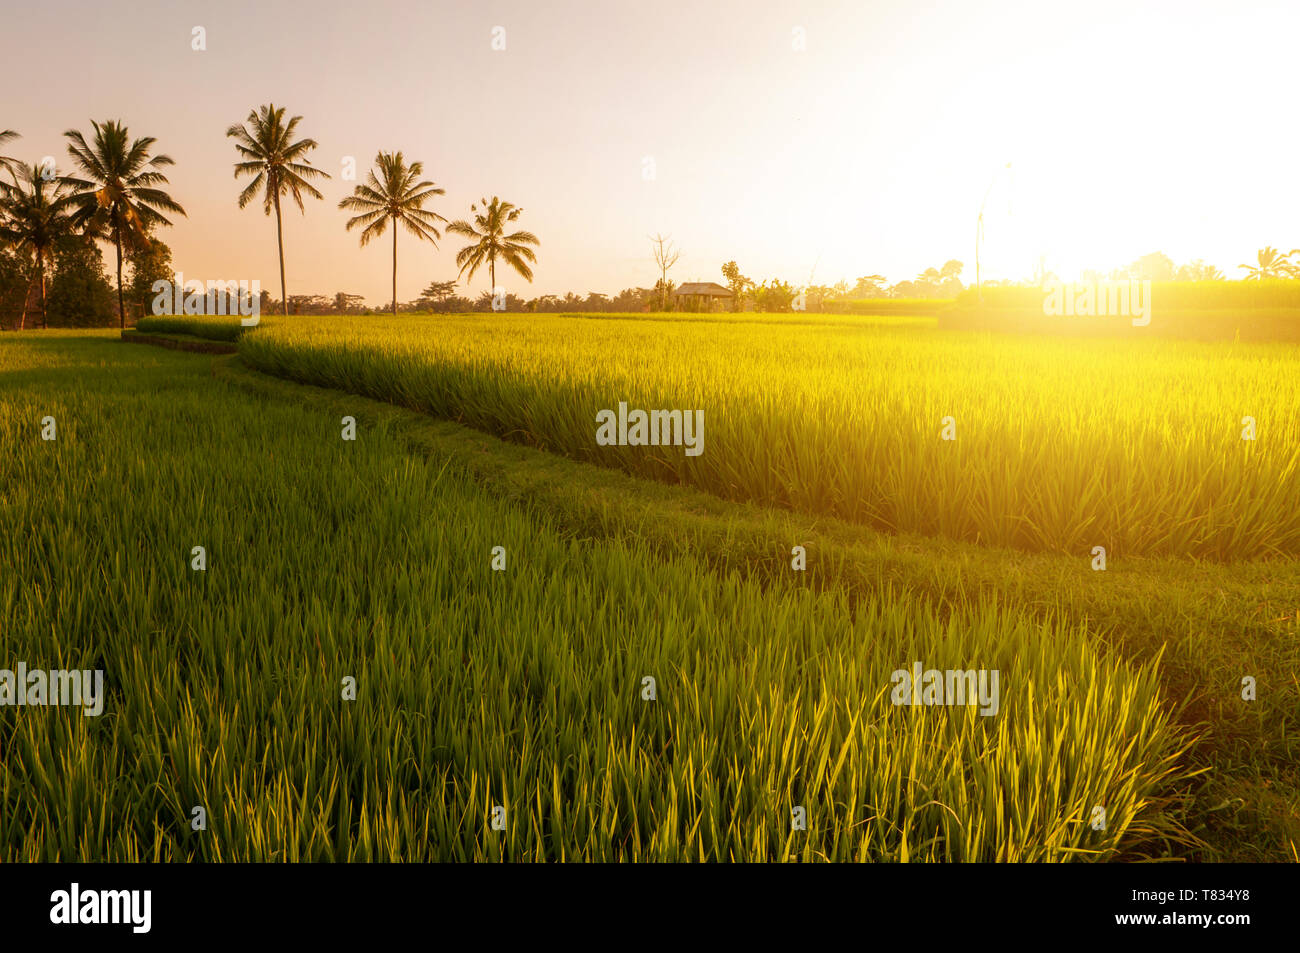 Paddy rice field in early stage at Bali, Indonesia. Coconut tree at background in sunset. - Stock Image